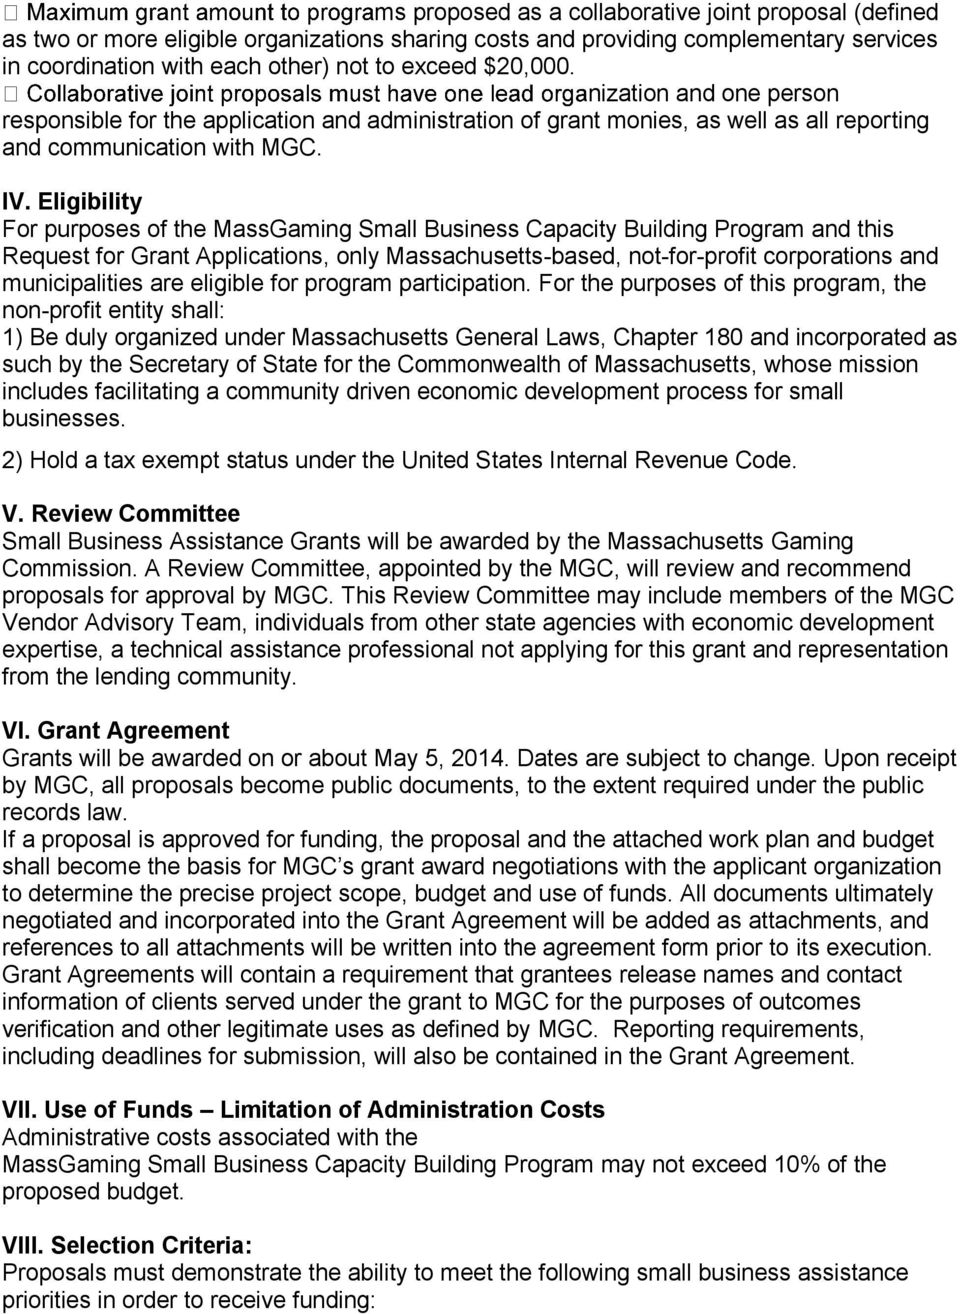 RFP File Name: MassGaming Small Business Capacity Building